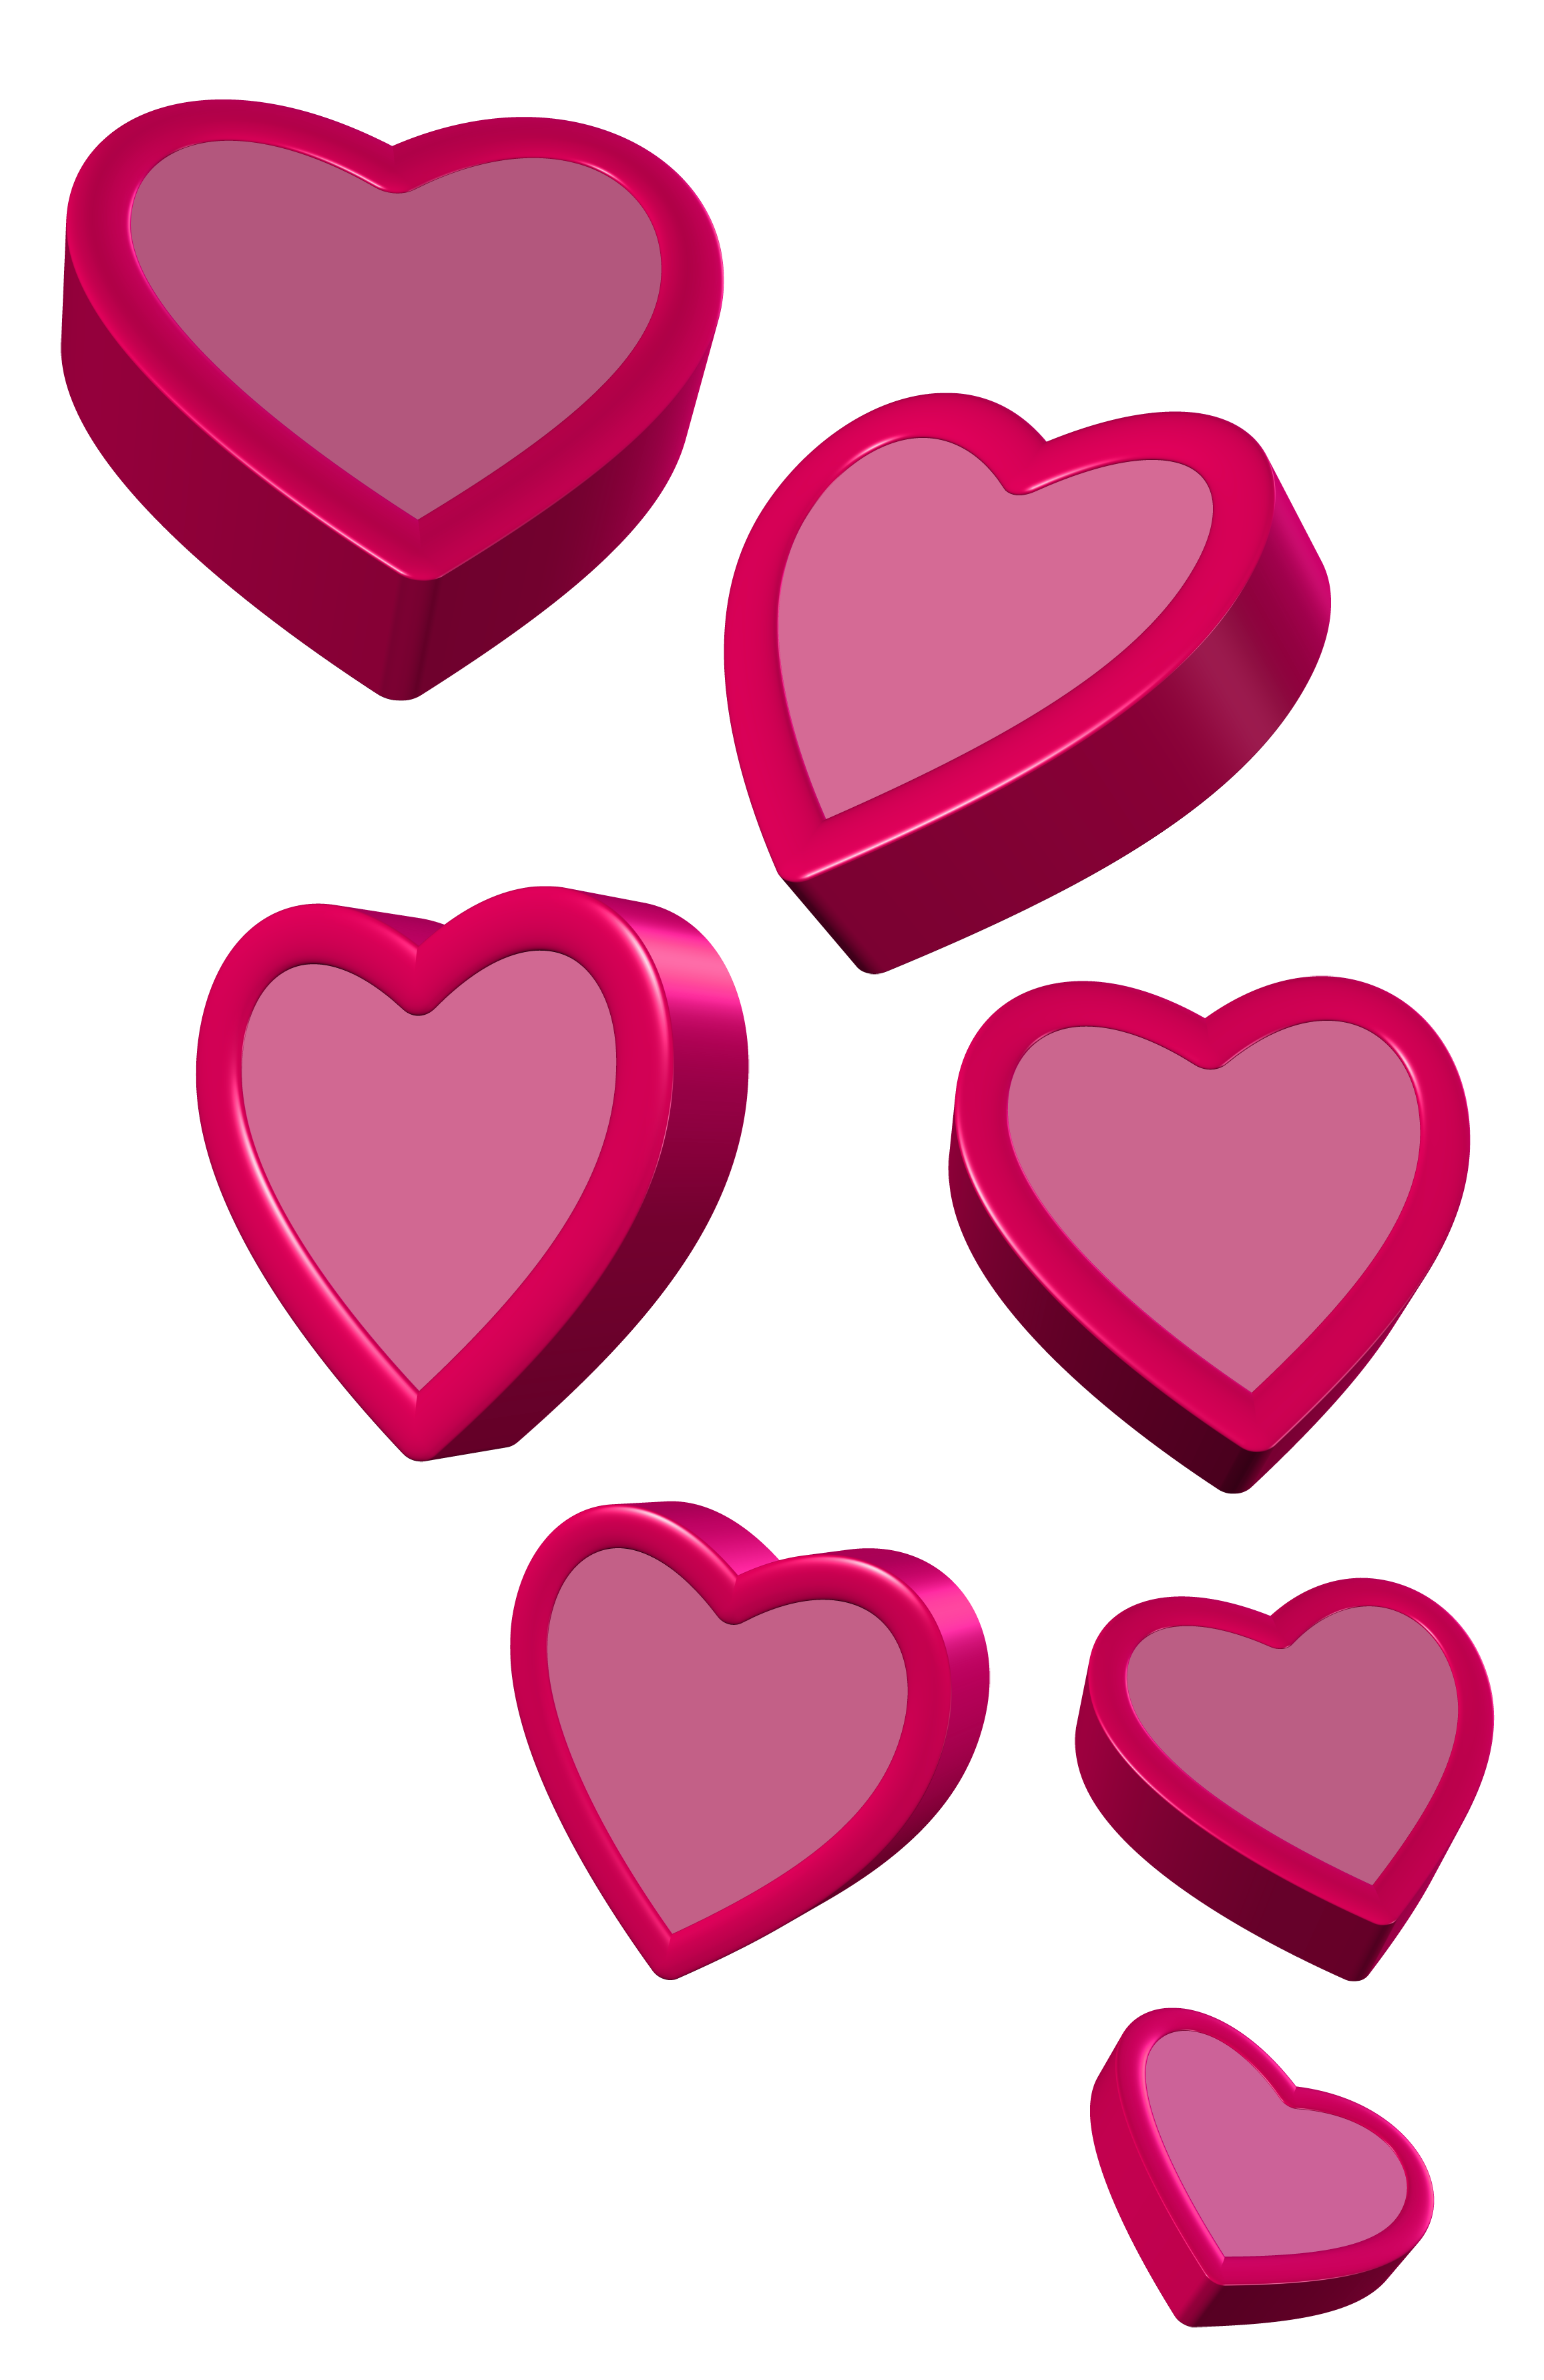 Png picture gallery yopriceville. Clipart hearts pink